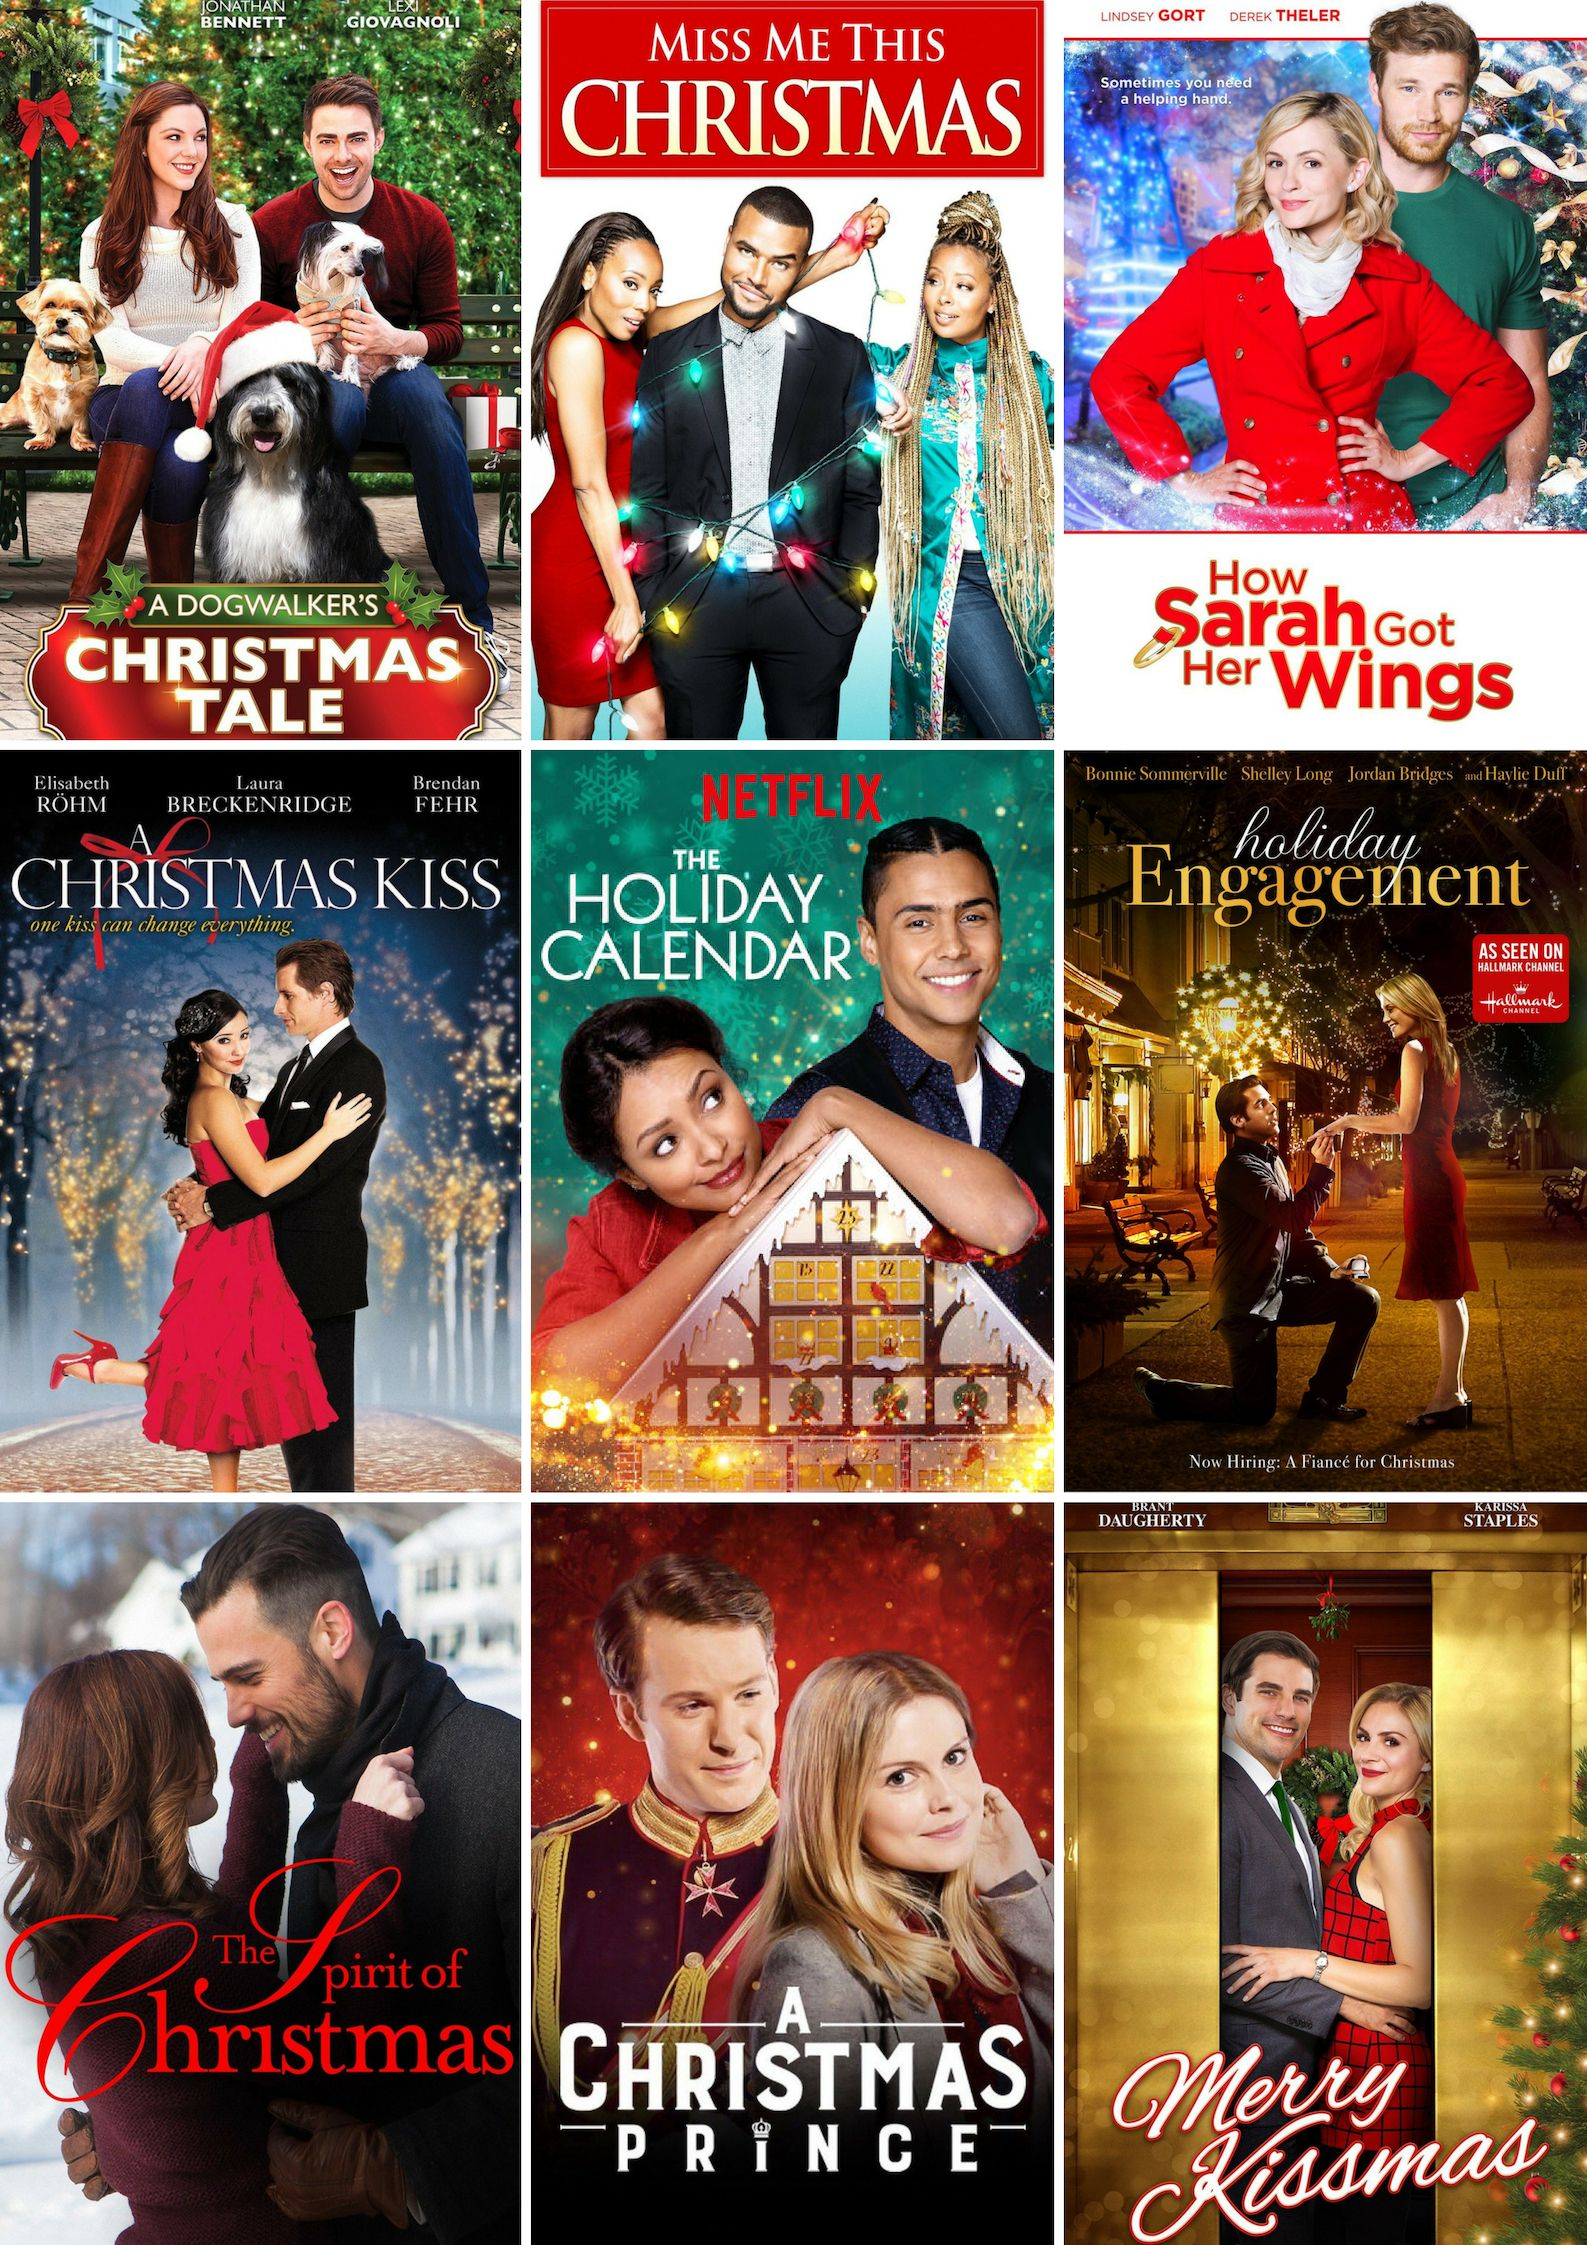 How To Write A Cheesy Romantic Christmas Movie In 10 Easy Steps Or Writing For The Hallmark Channel Tara Meddaugh Romantic Christmas Movies Christmas Movies Hallmark Christmas Movies